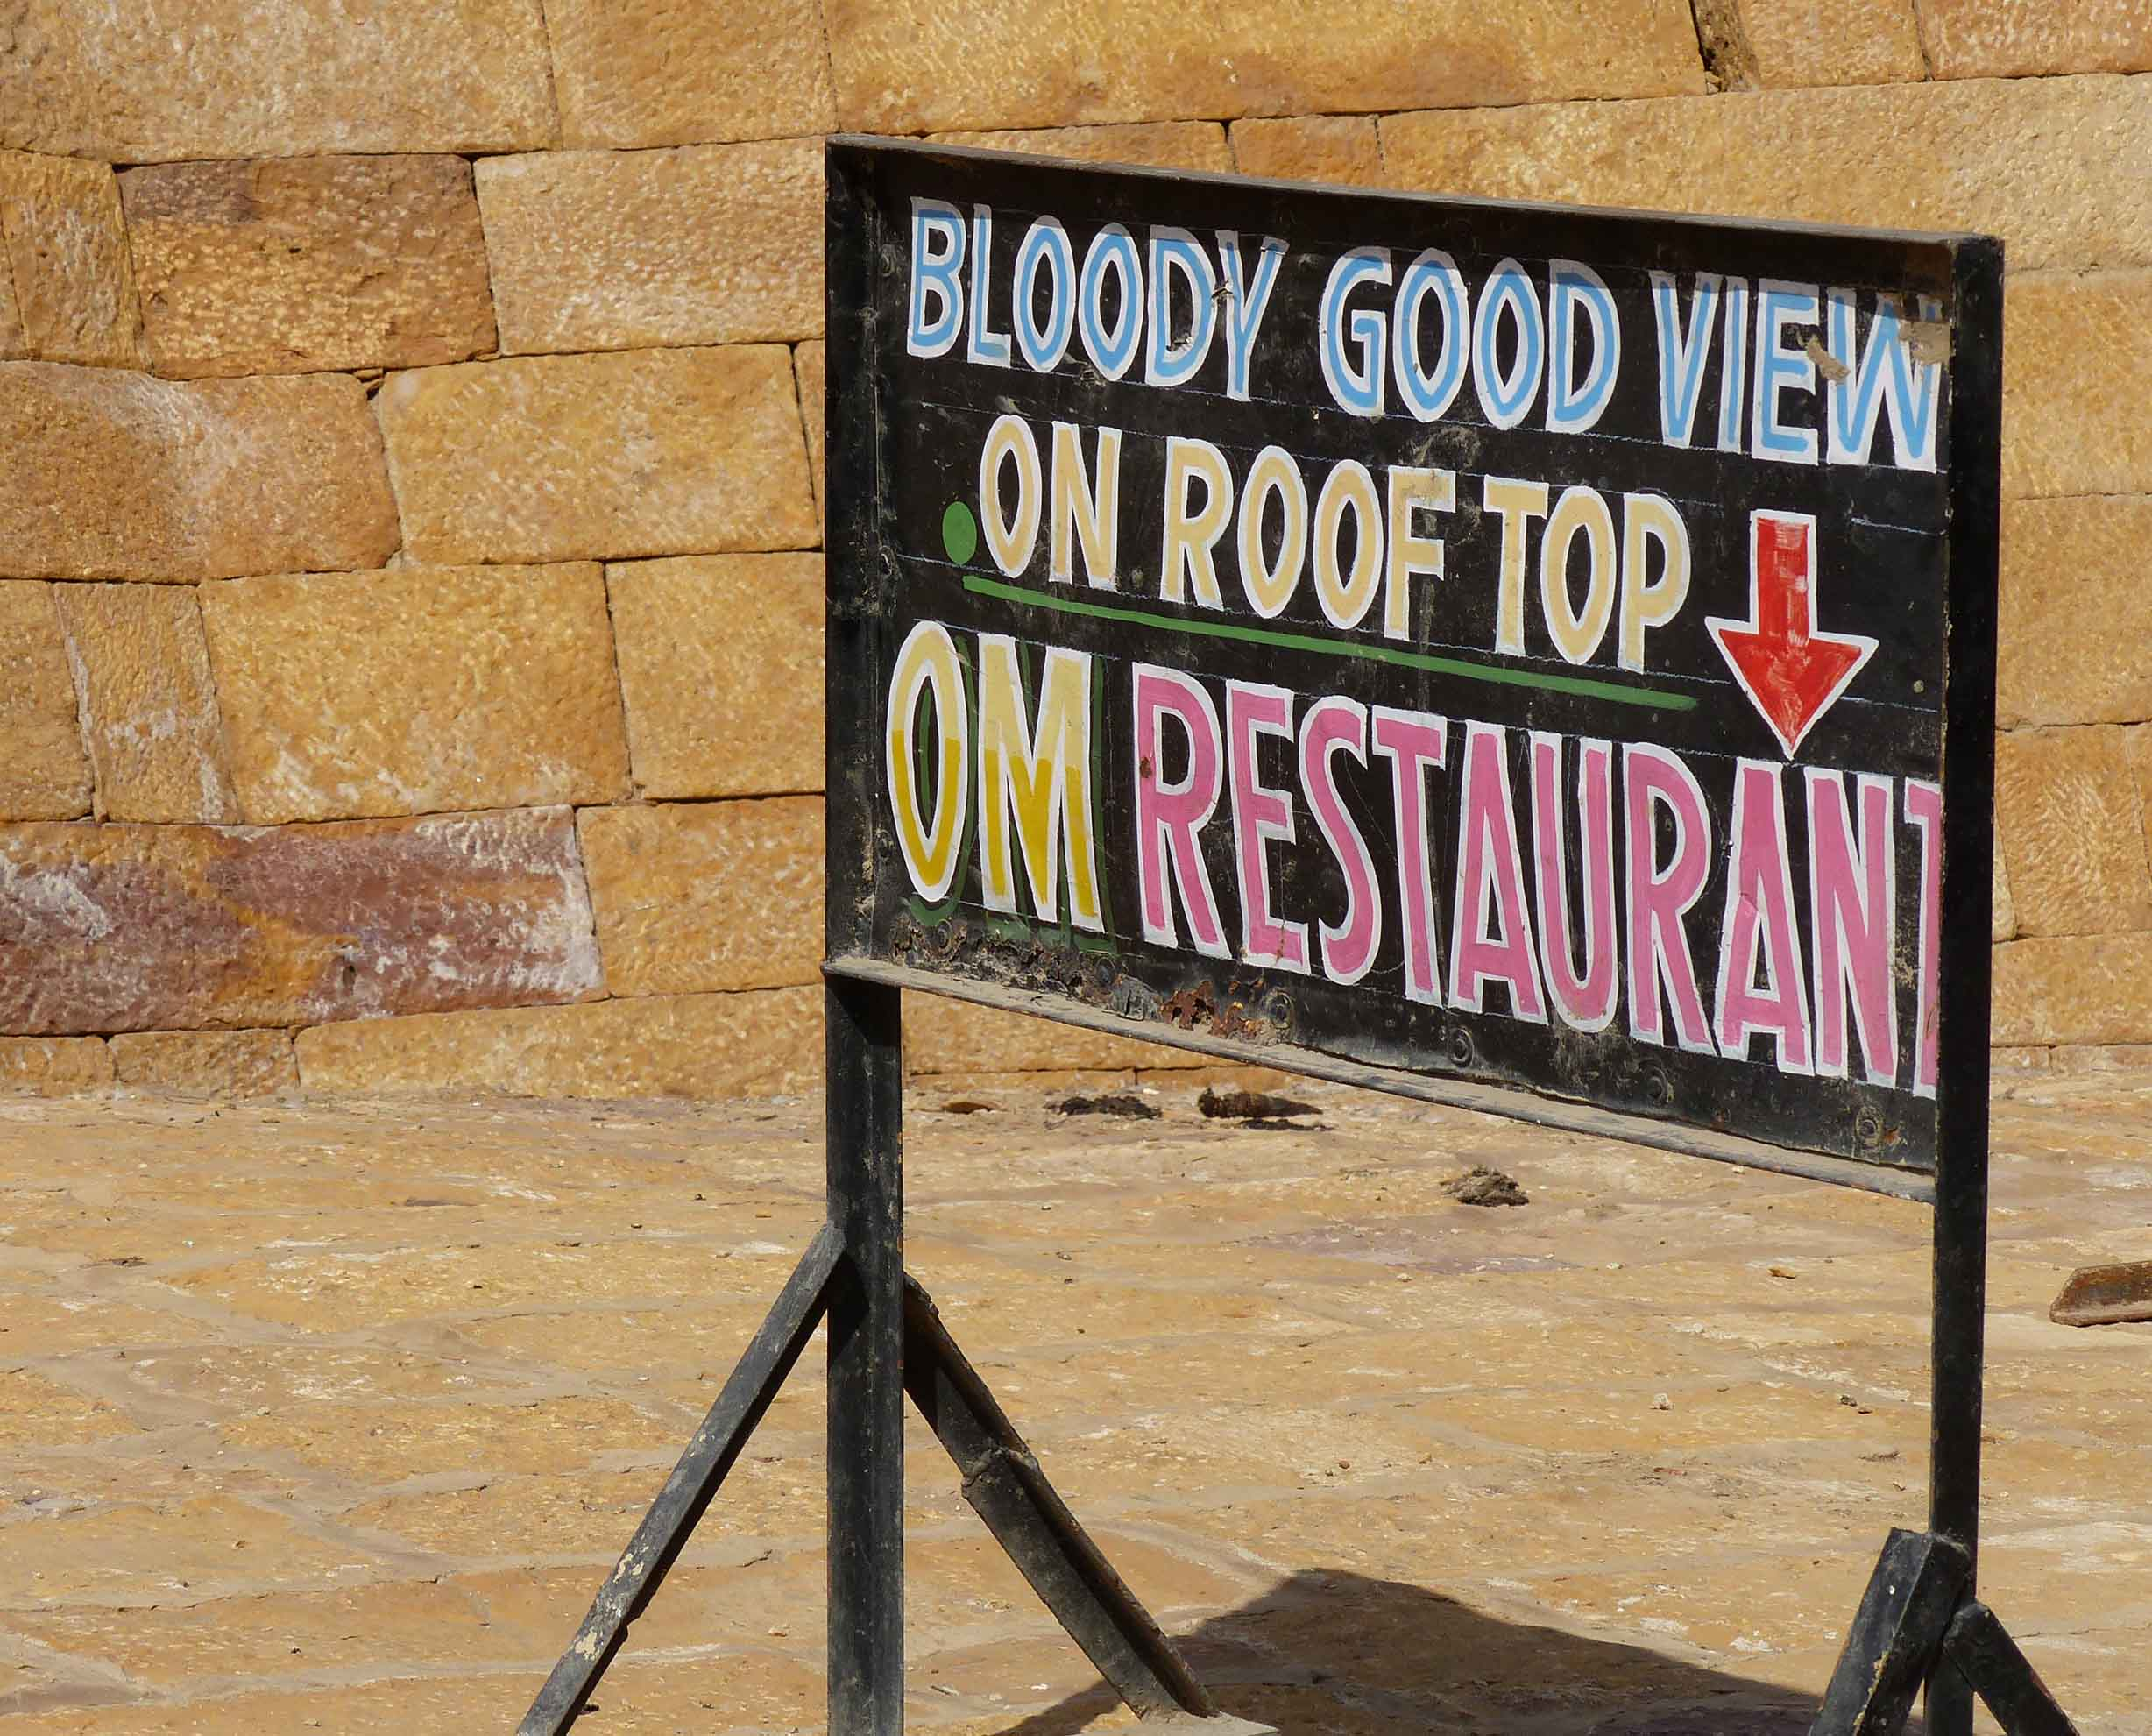 Sign advertising roof top view